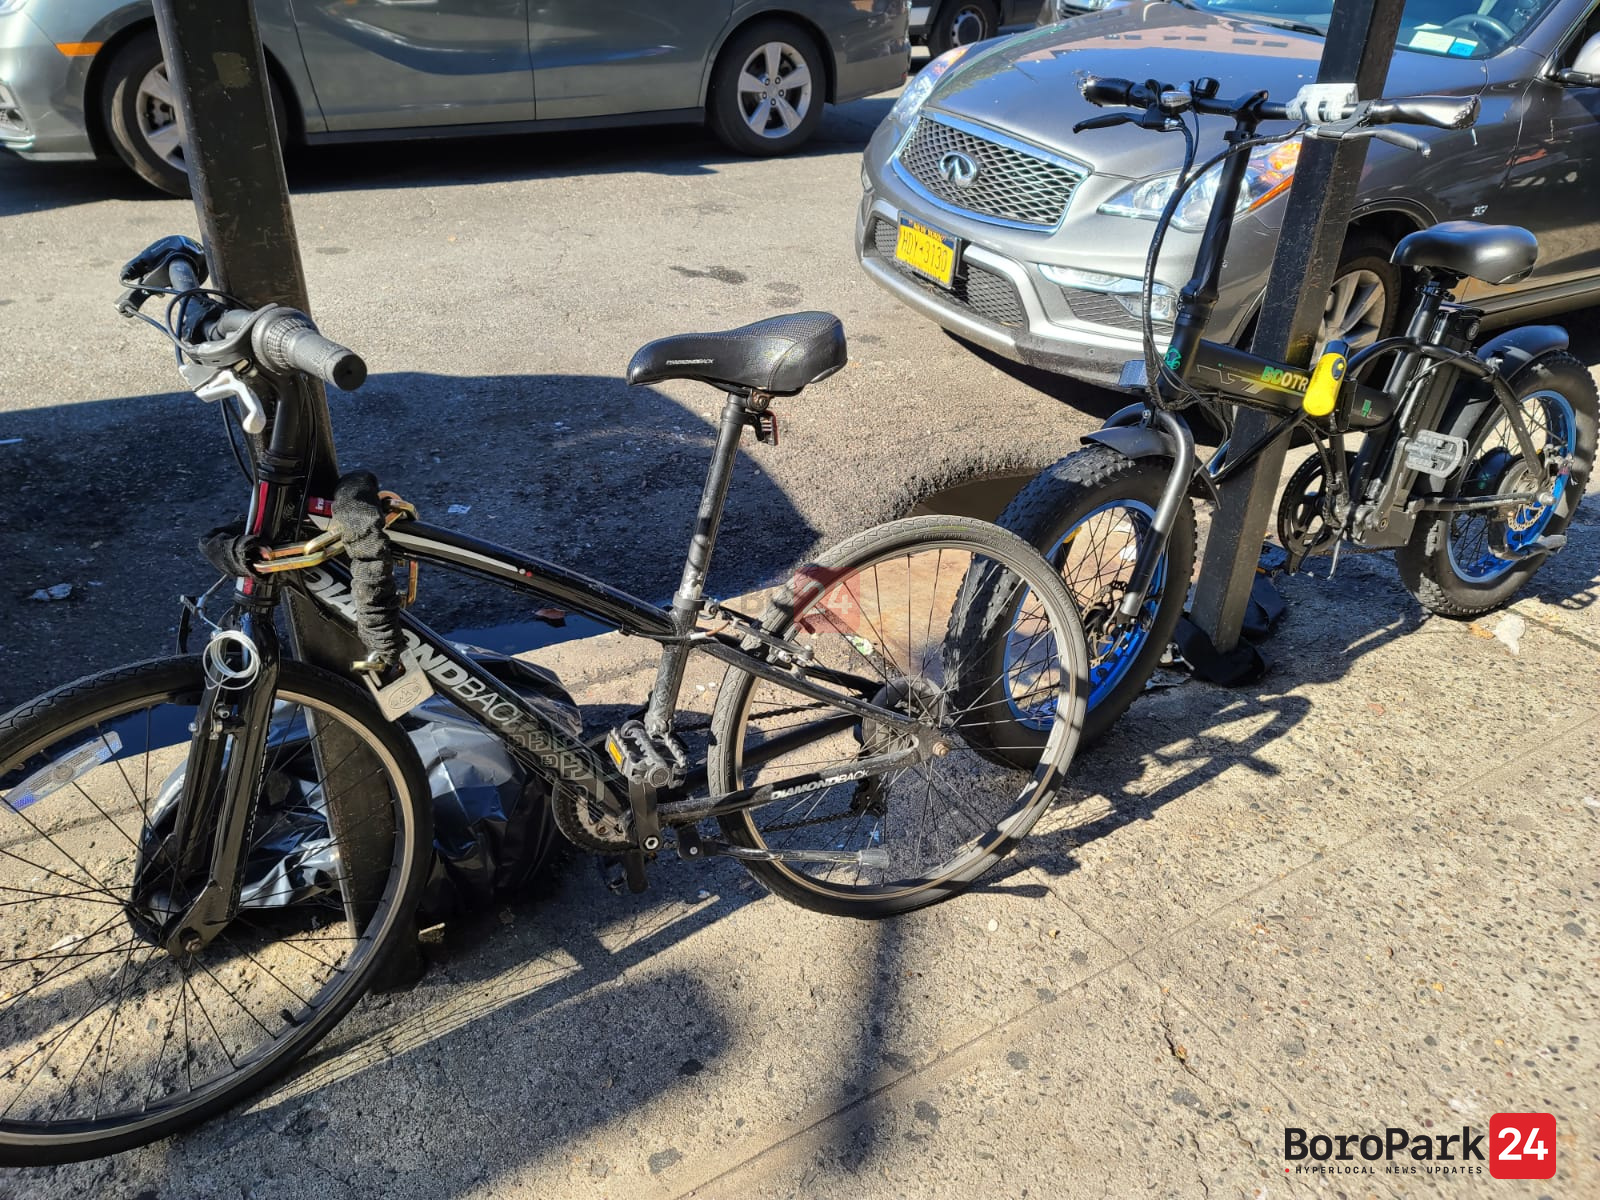 NYC Sees Spike in Bike Theft Amidst Ongoing Pandemic